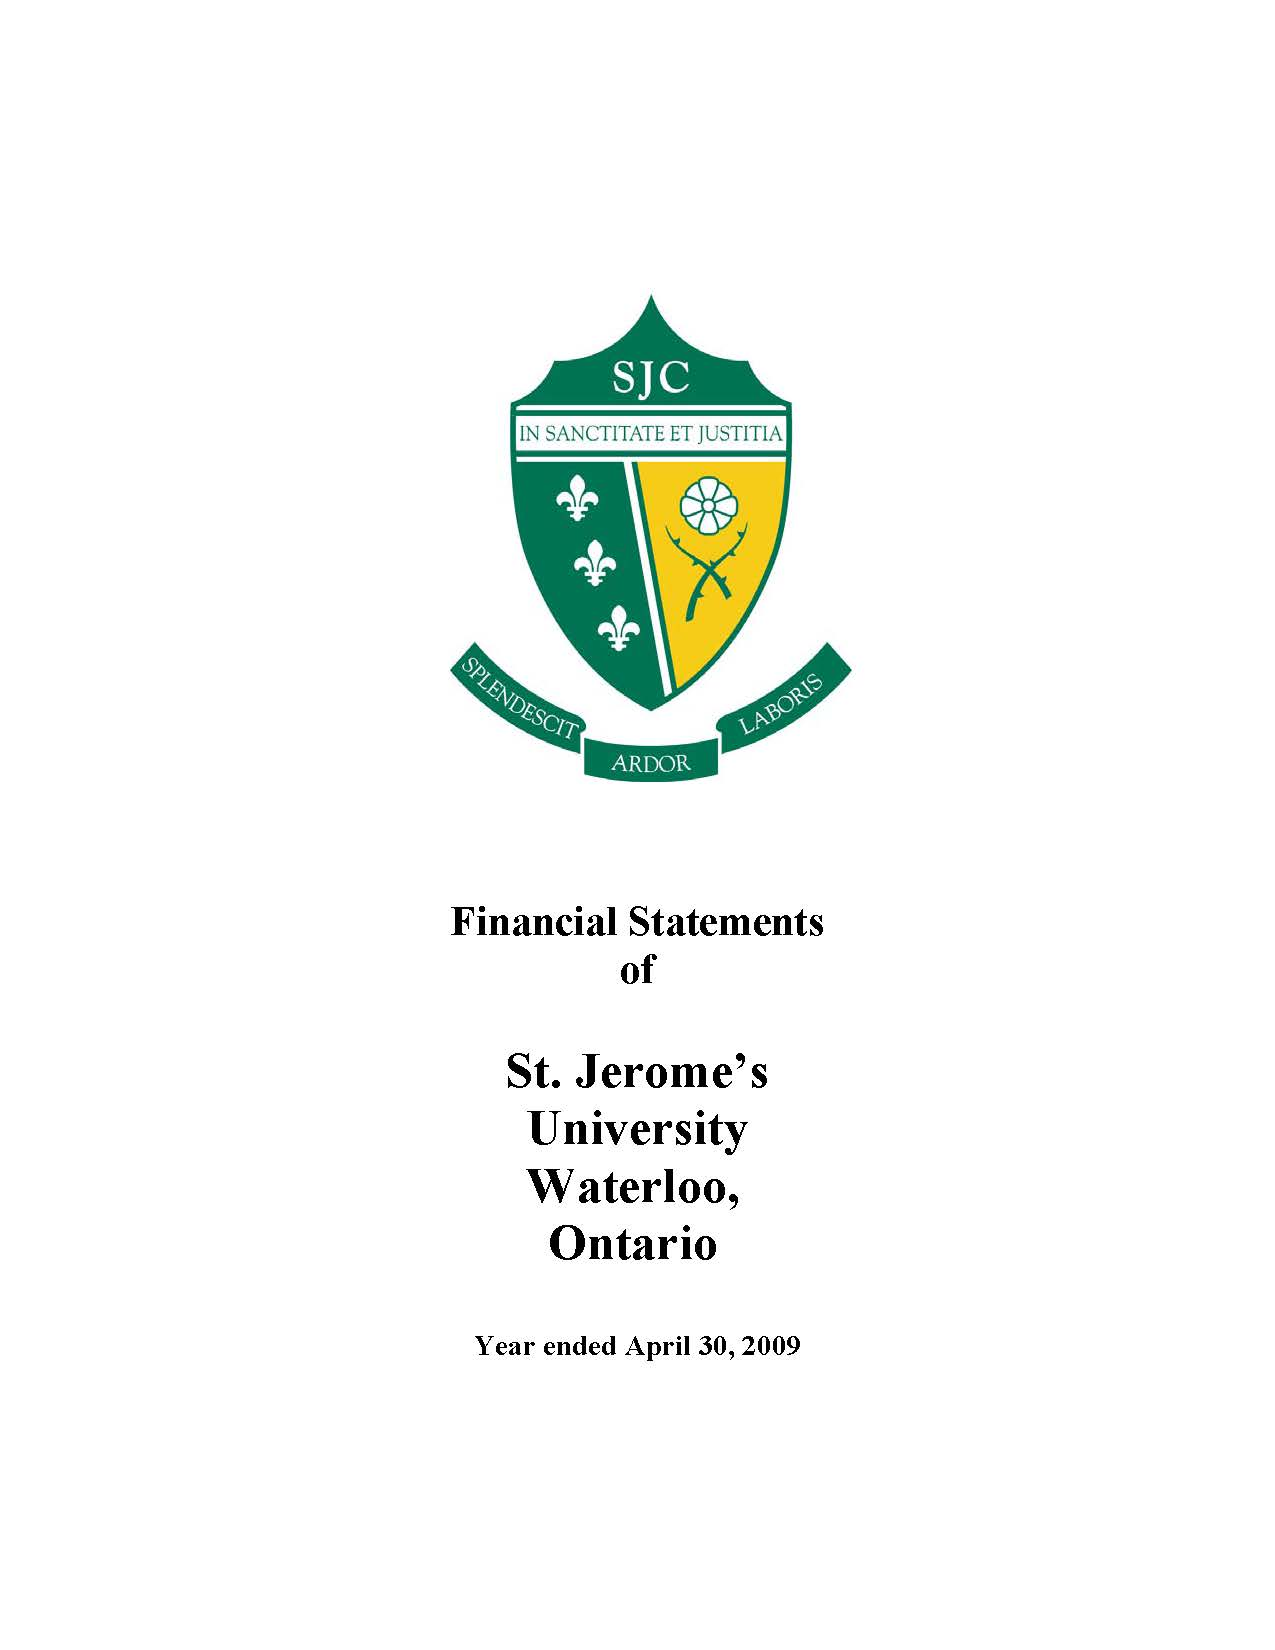 SJU Financial Statements Ending 2009